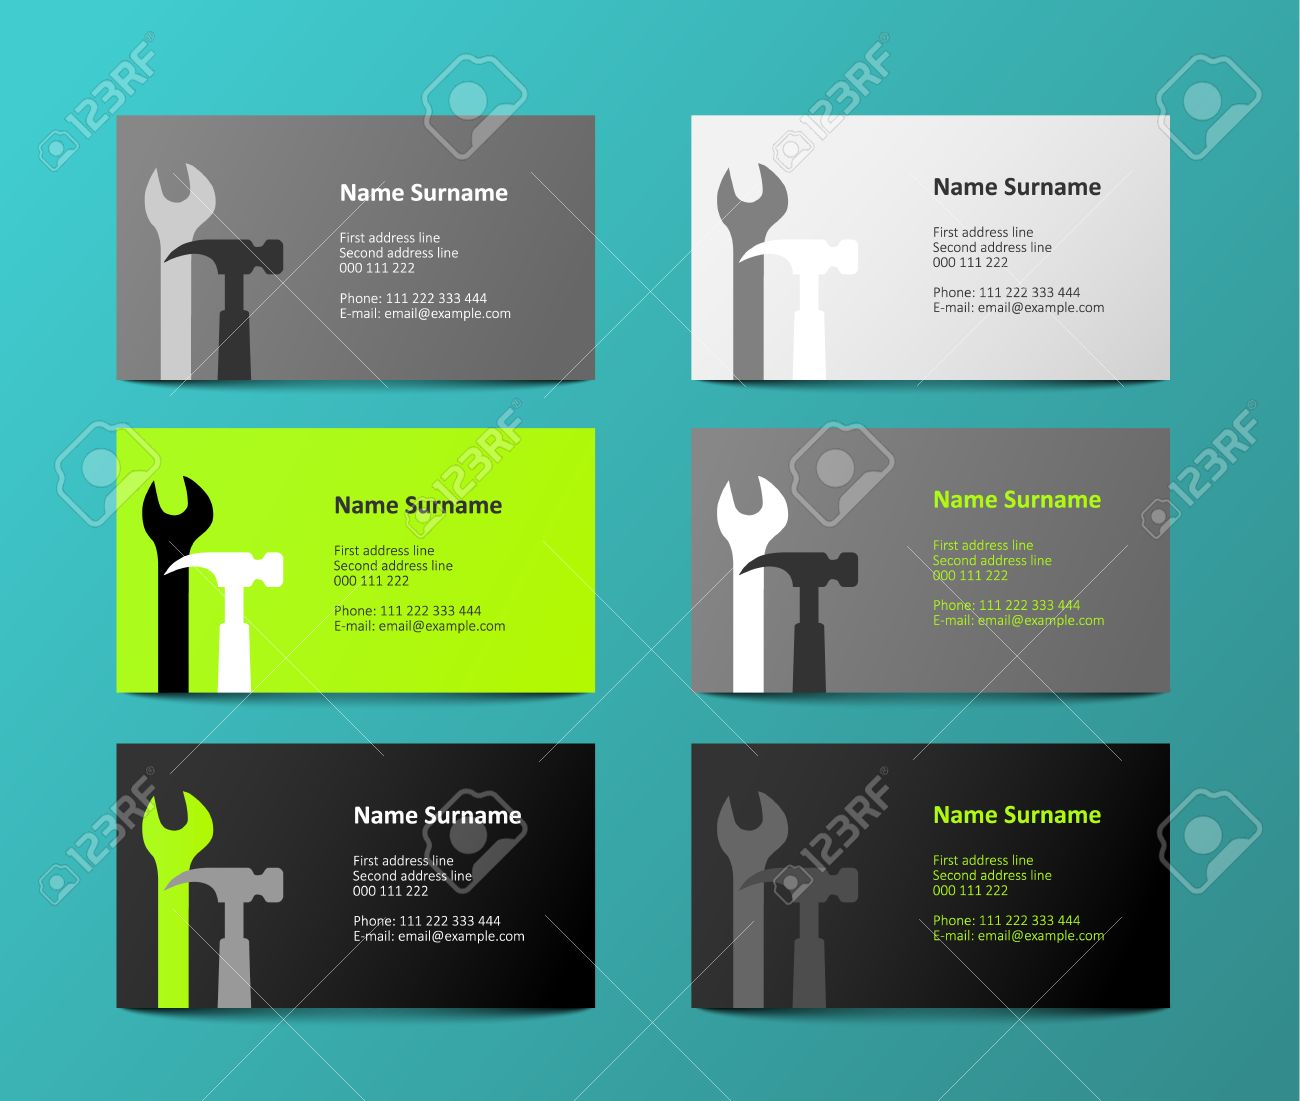 Business card printing fort lauderdale images free business cards create free business cards to print image collections free best way to print business cards choice magicingreecefo Images